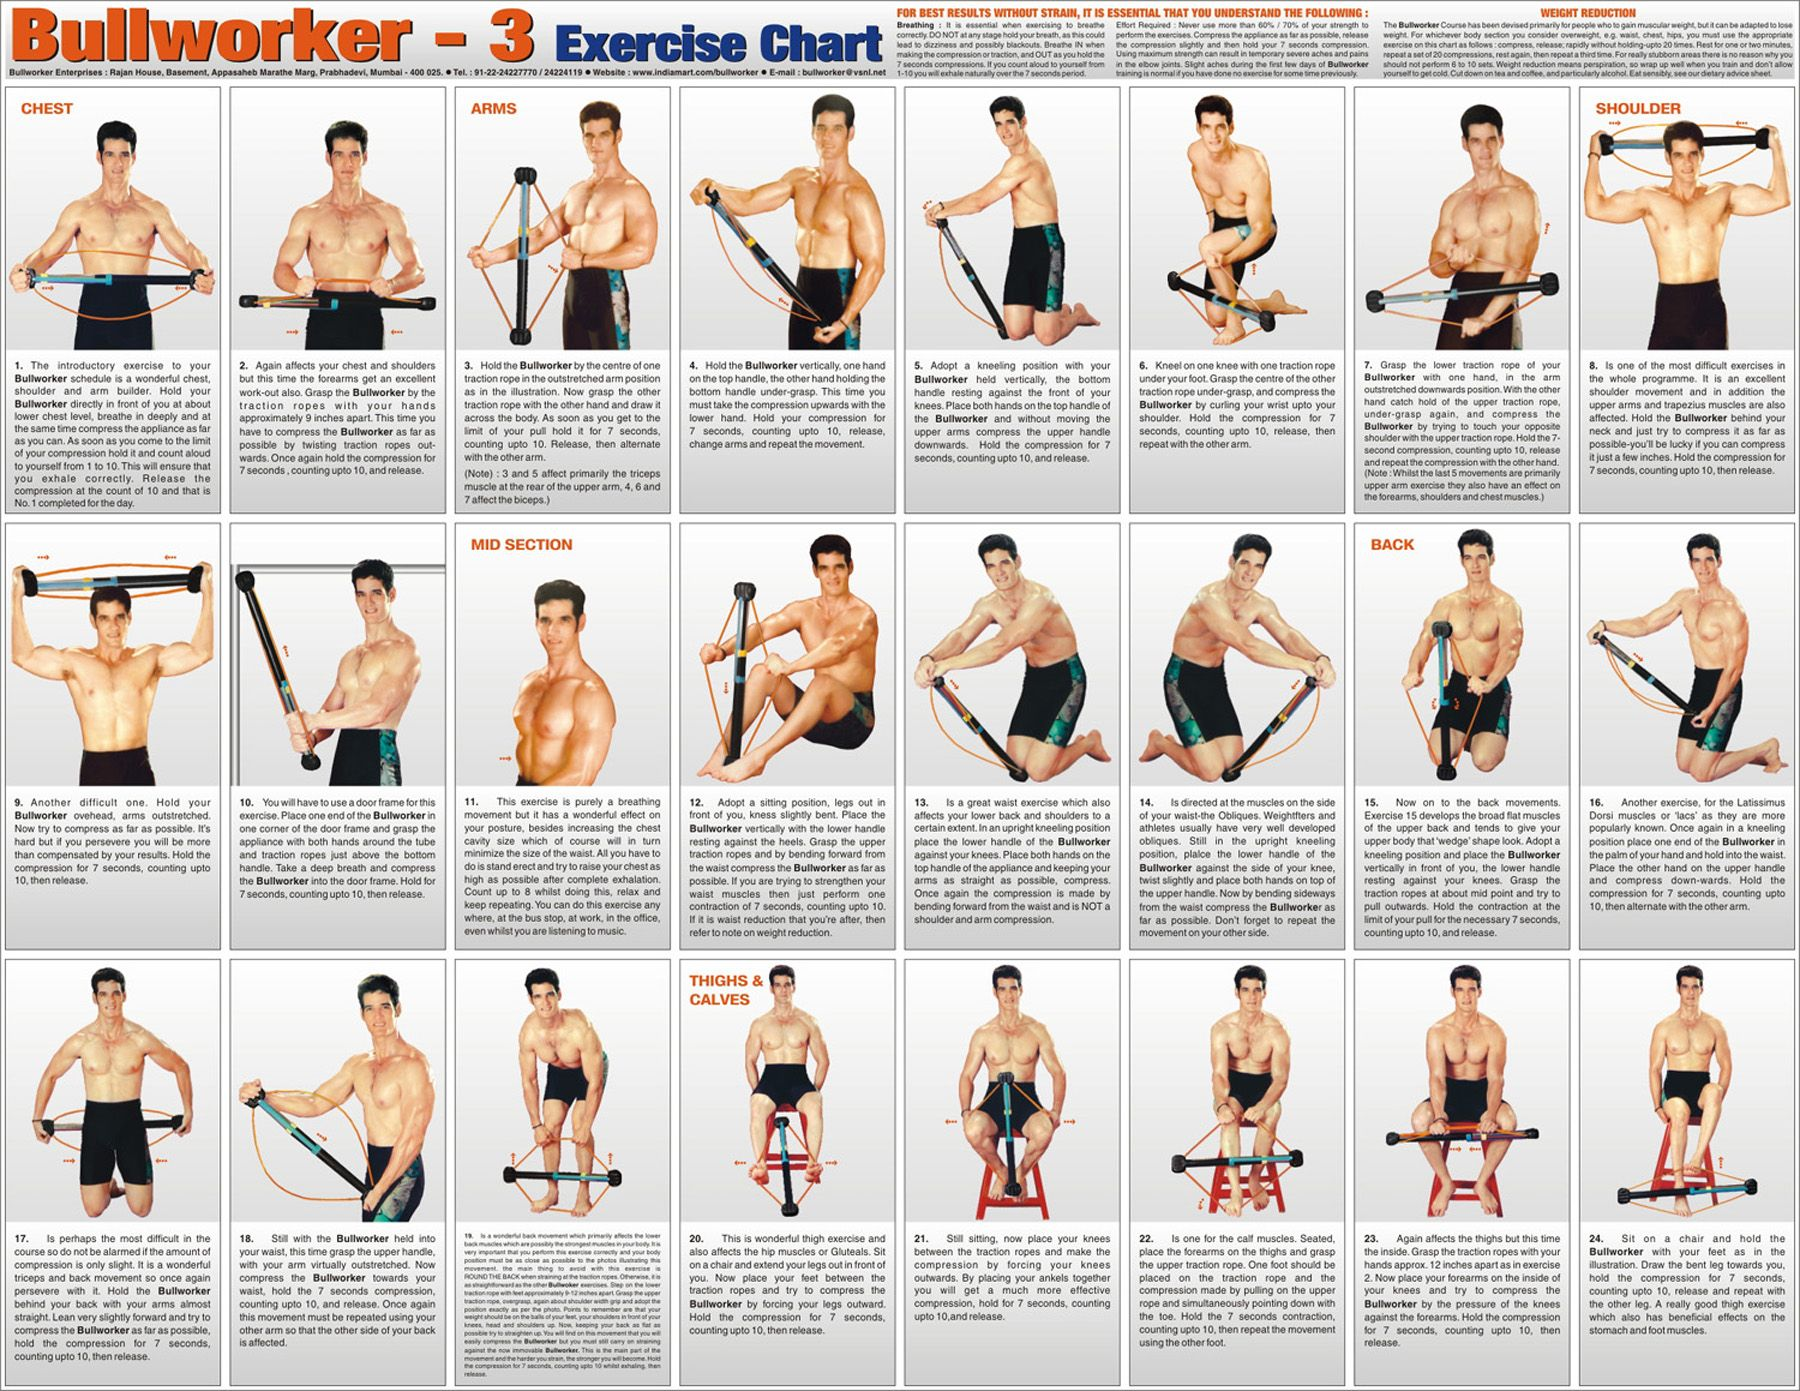 Training Gains Toehold For >> Bullworker Fitness Isometric Exercises Gym Workouts Exercise